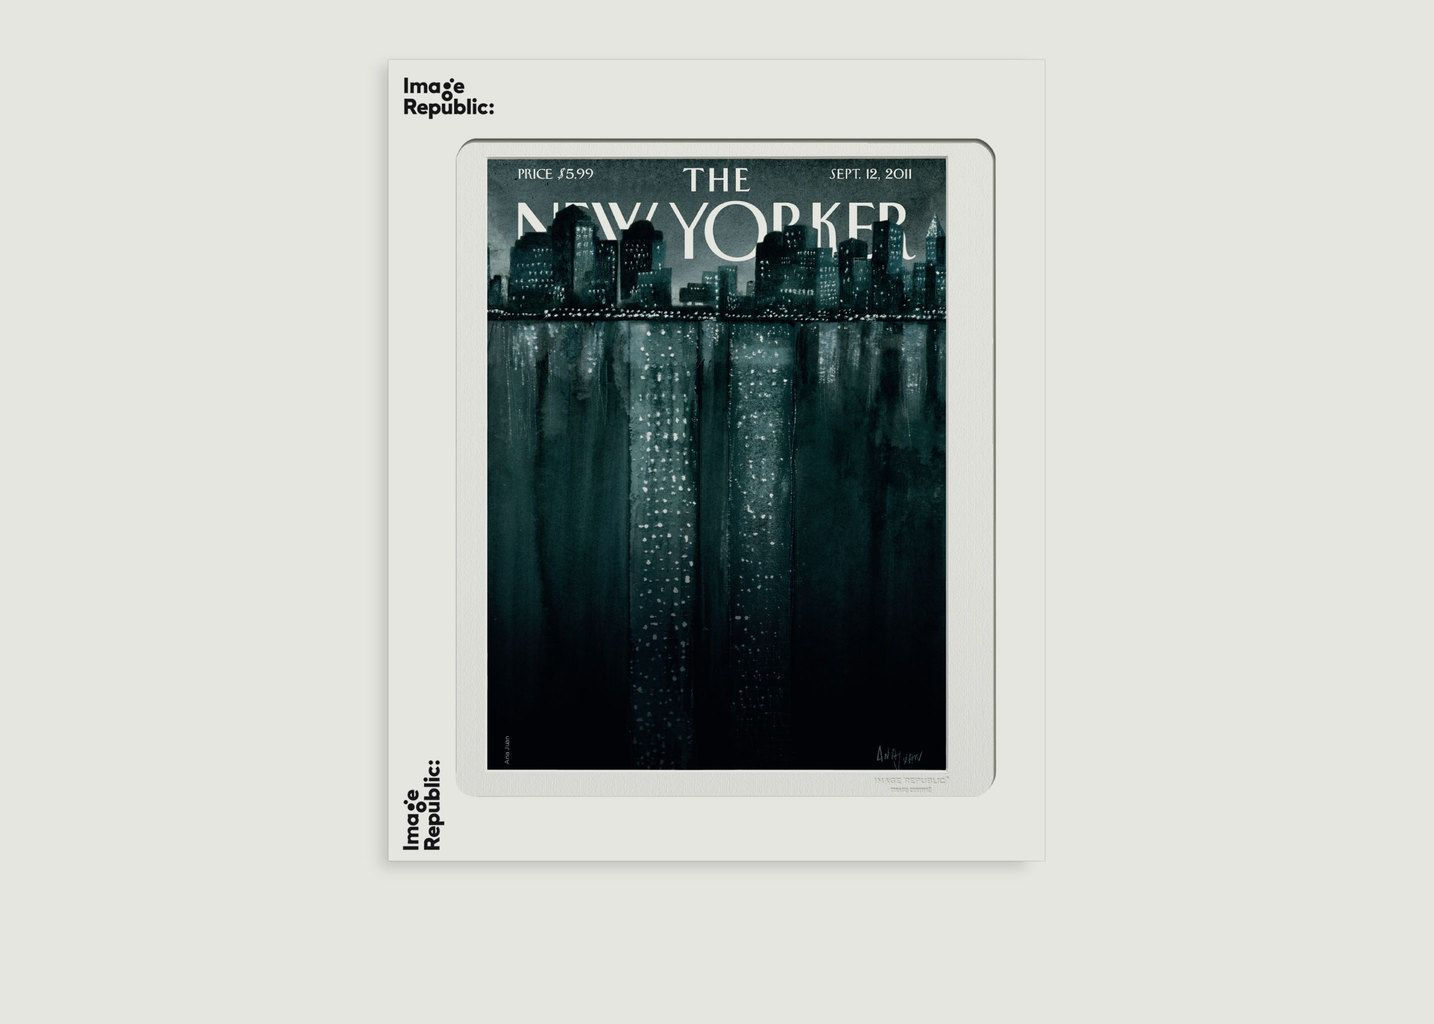 Affiche The New Yorker 22 Juan - Image Republic